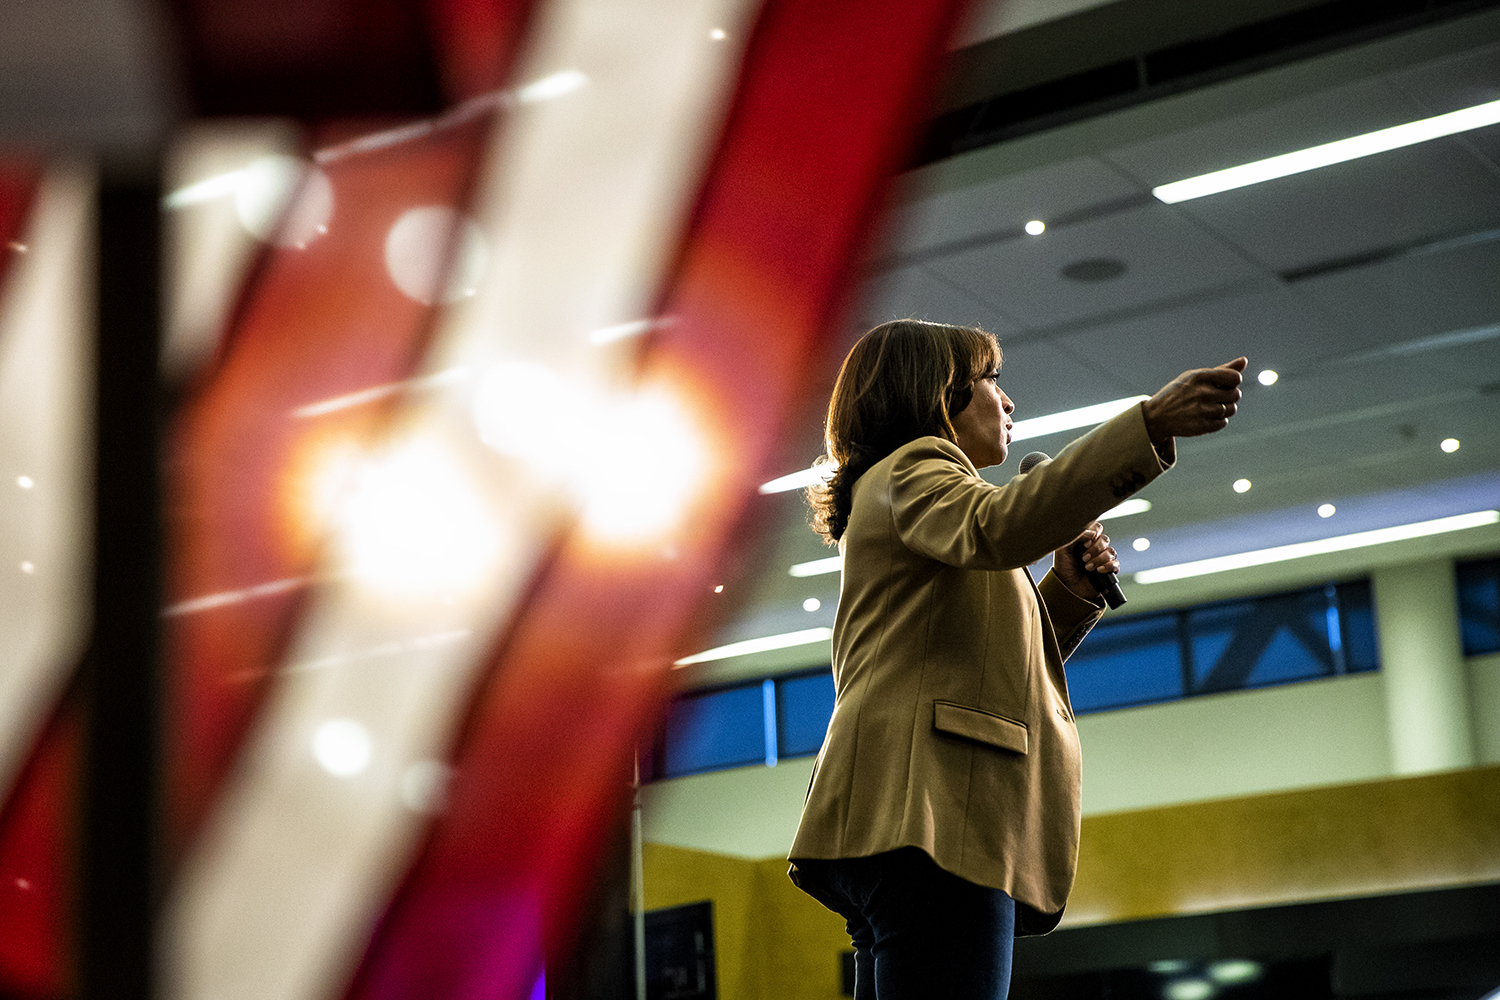 Sen. Kamala Harris speaks during her town hall at Carver-Hawkeye Arena on Tuesday, October 22, 2019. Harris stuck to her stump speech about equality, specifically among marginalized communities and condemned President Trump's divisive rhetoric.